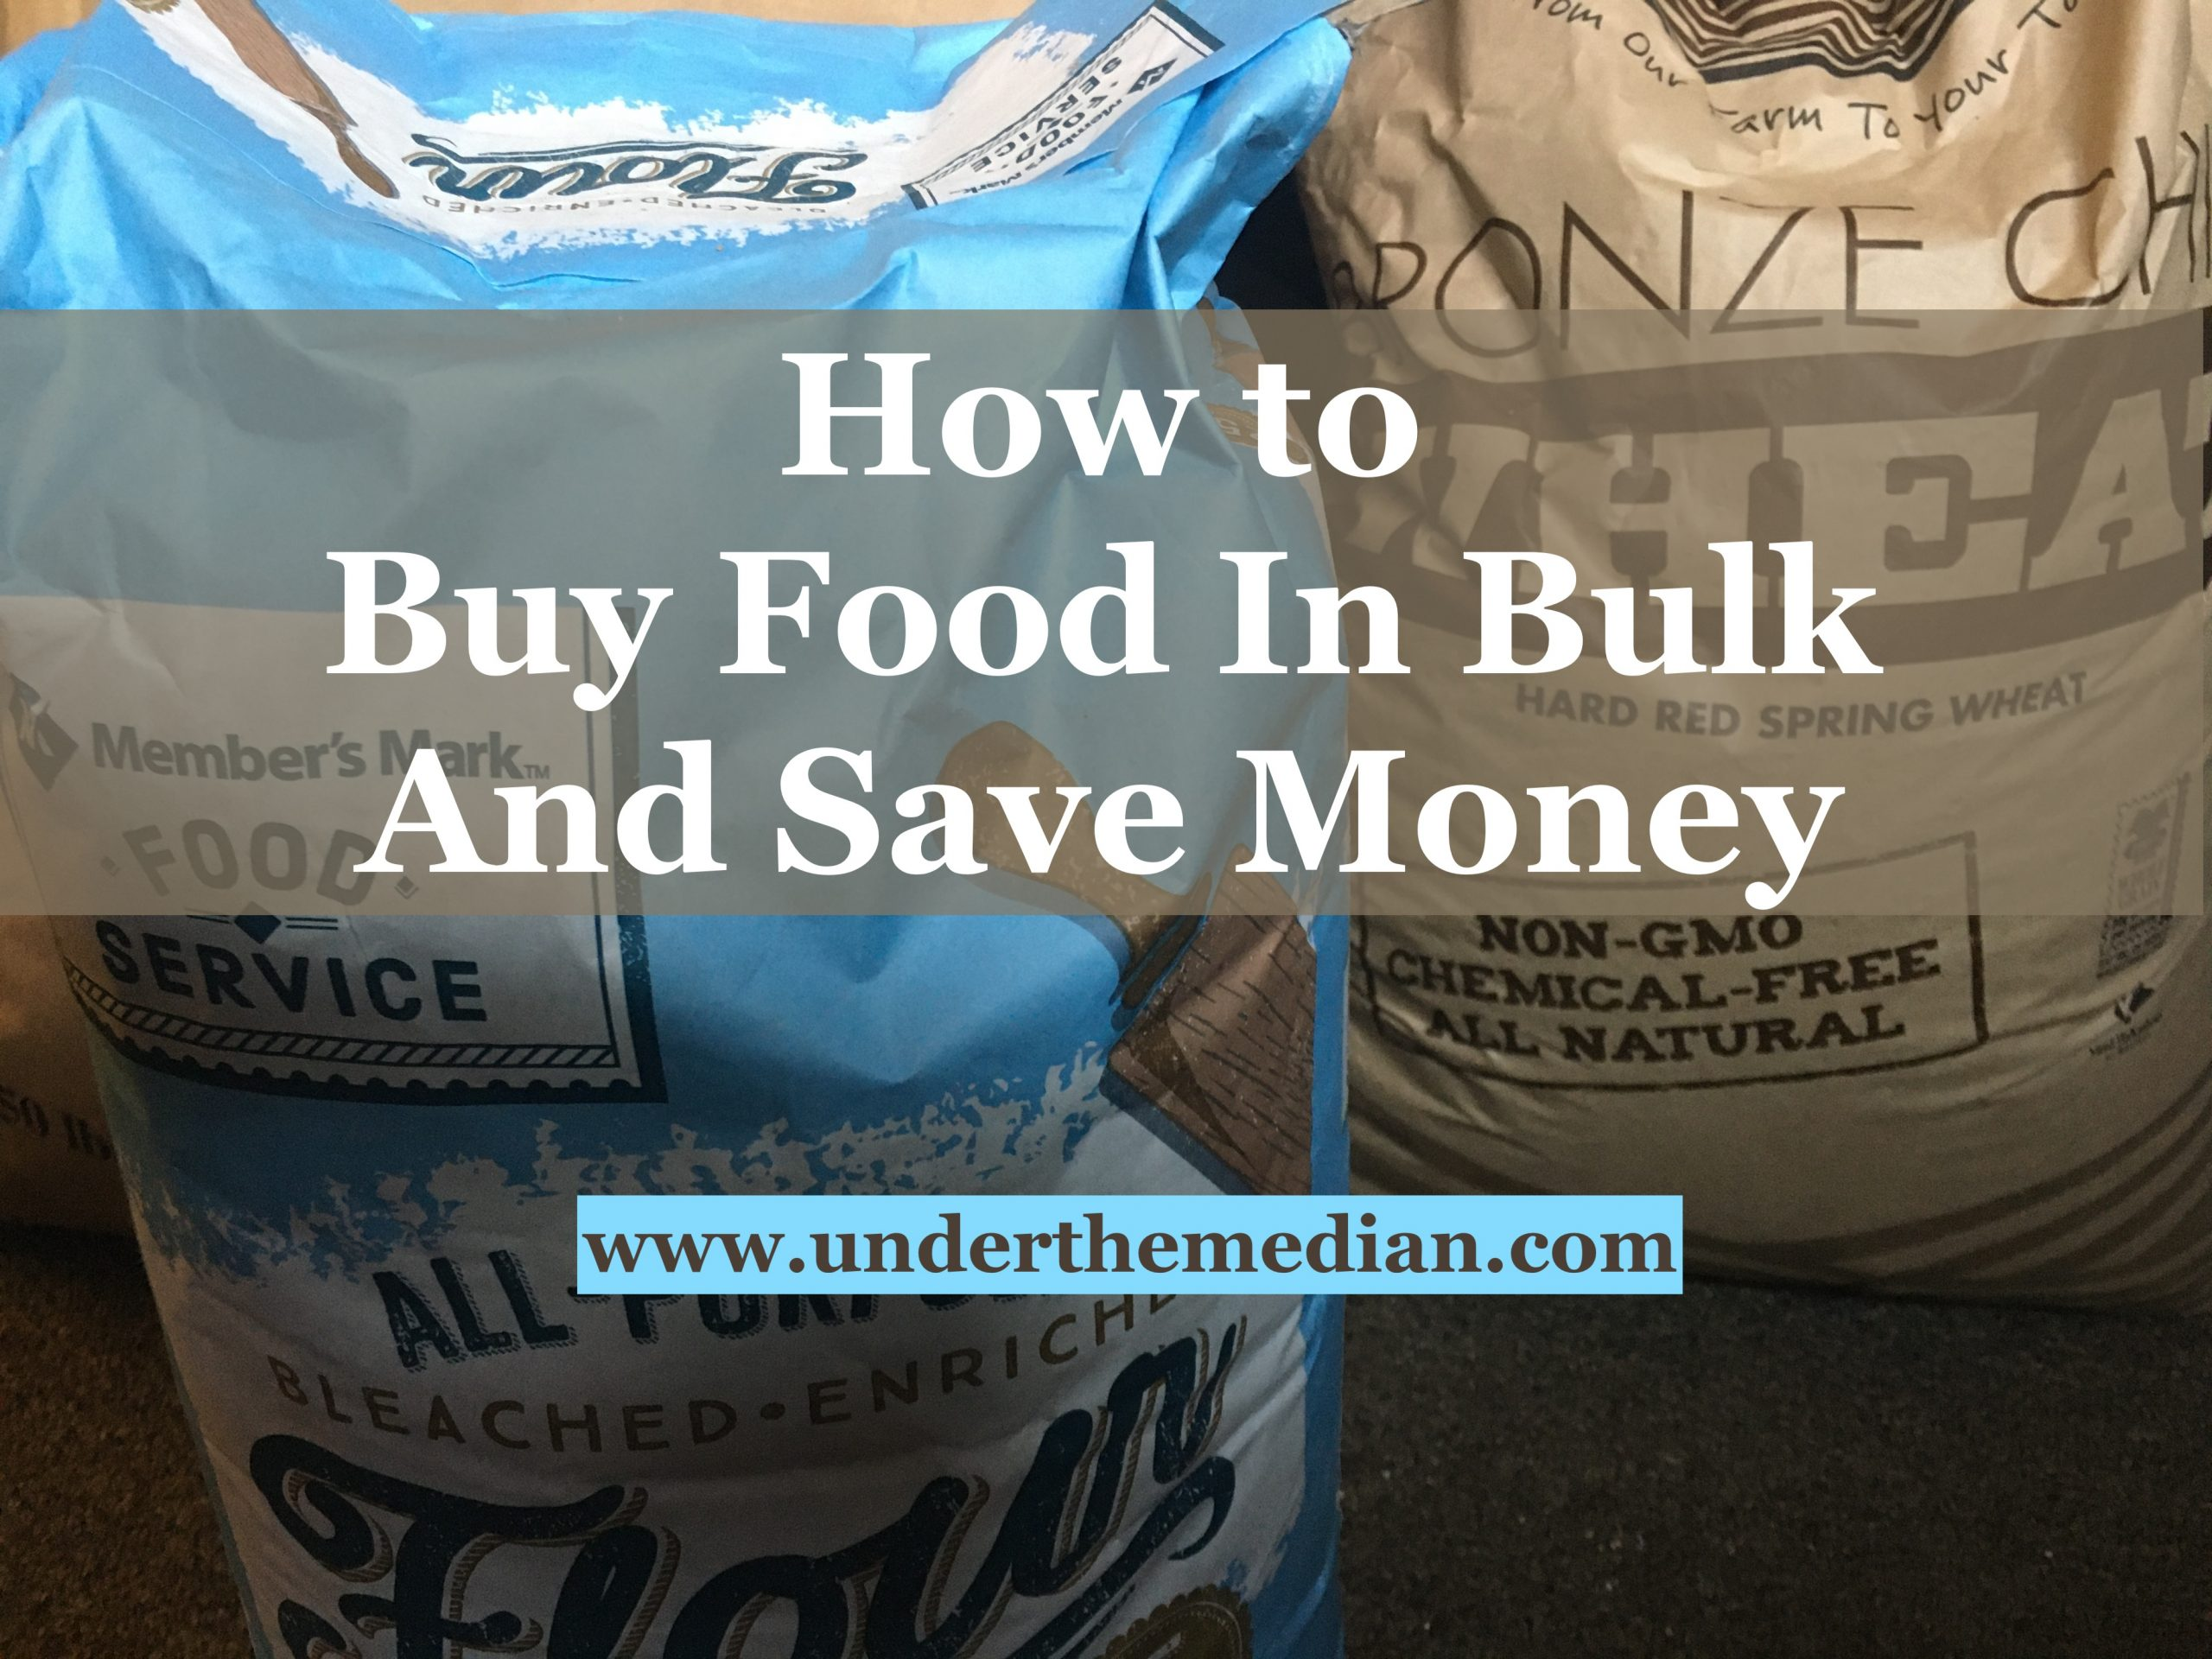 How to Buy Food in Bulk and Save Money